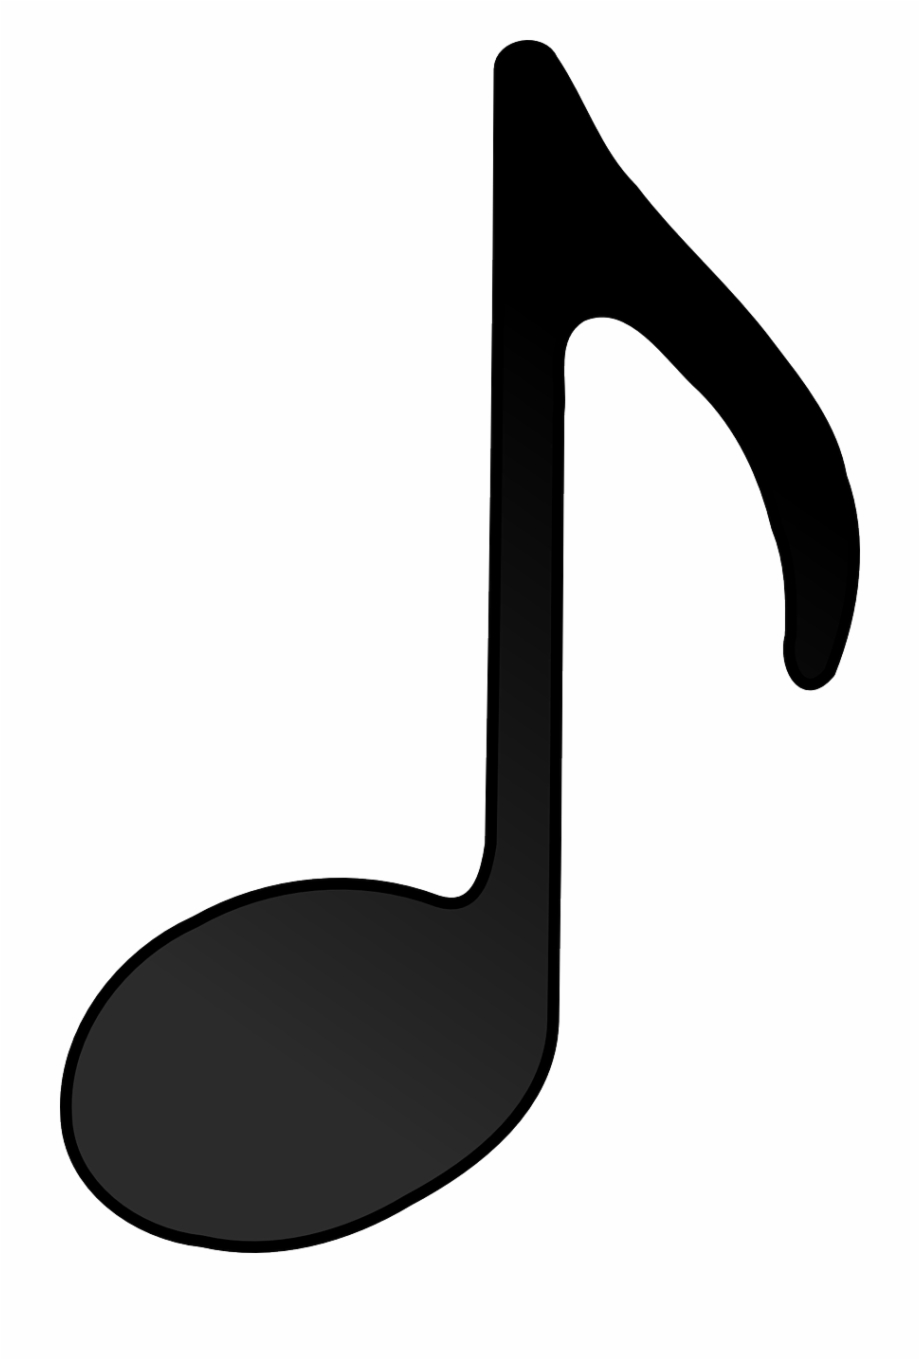 Black music notes clipart clipart free download Png Black And White Stock Black And White Download - Music Note ... clipart free download